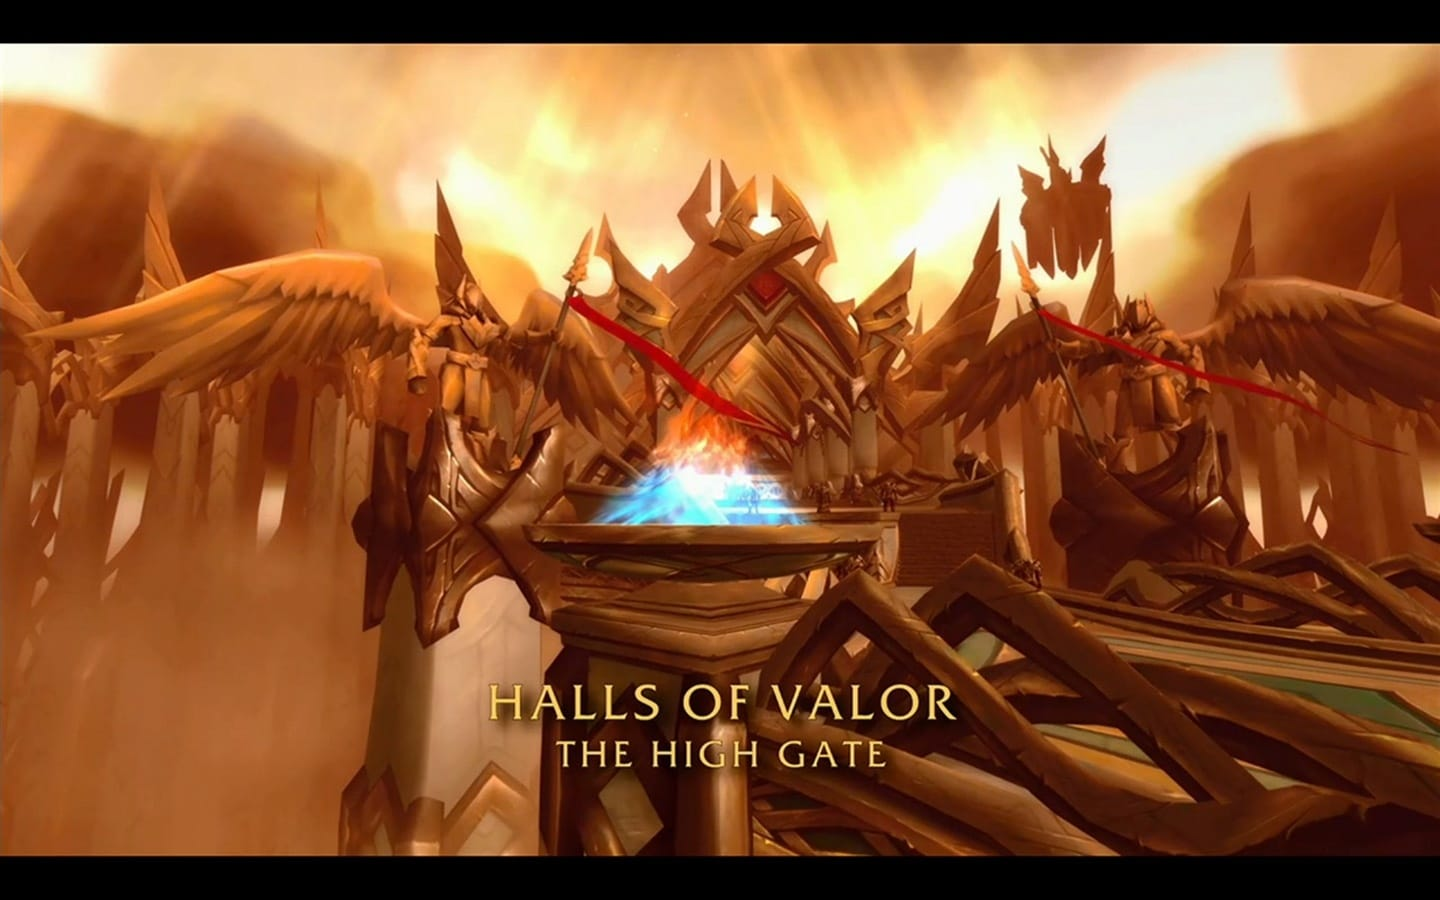 hallsofvalor